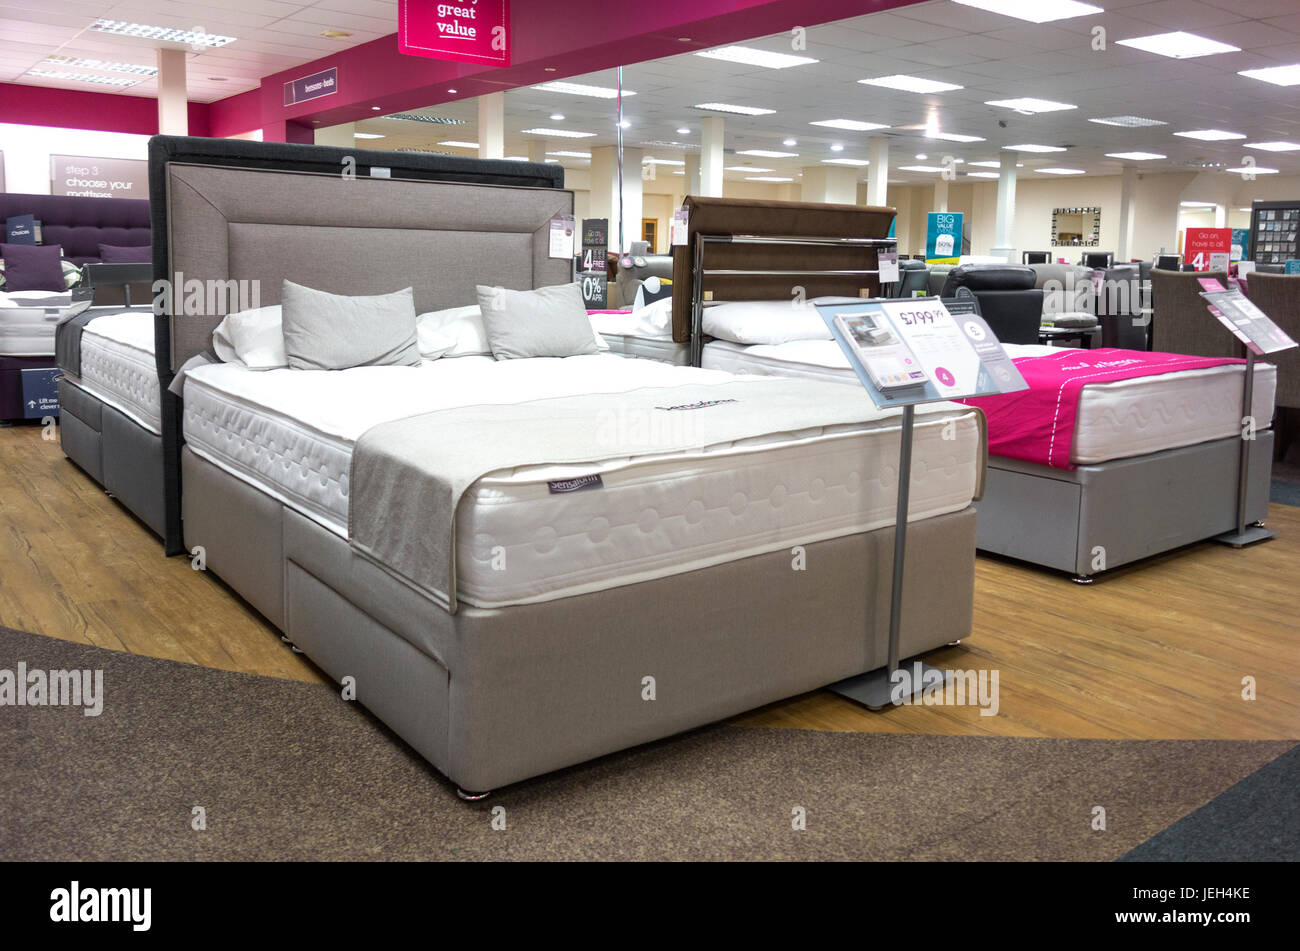 Interior Inside Bensons Beds Bed Store Shop Bedroom Furniture Stock Photo Royalty Free Image